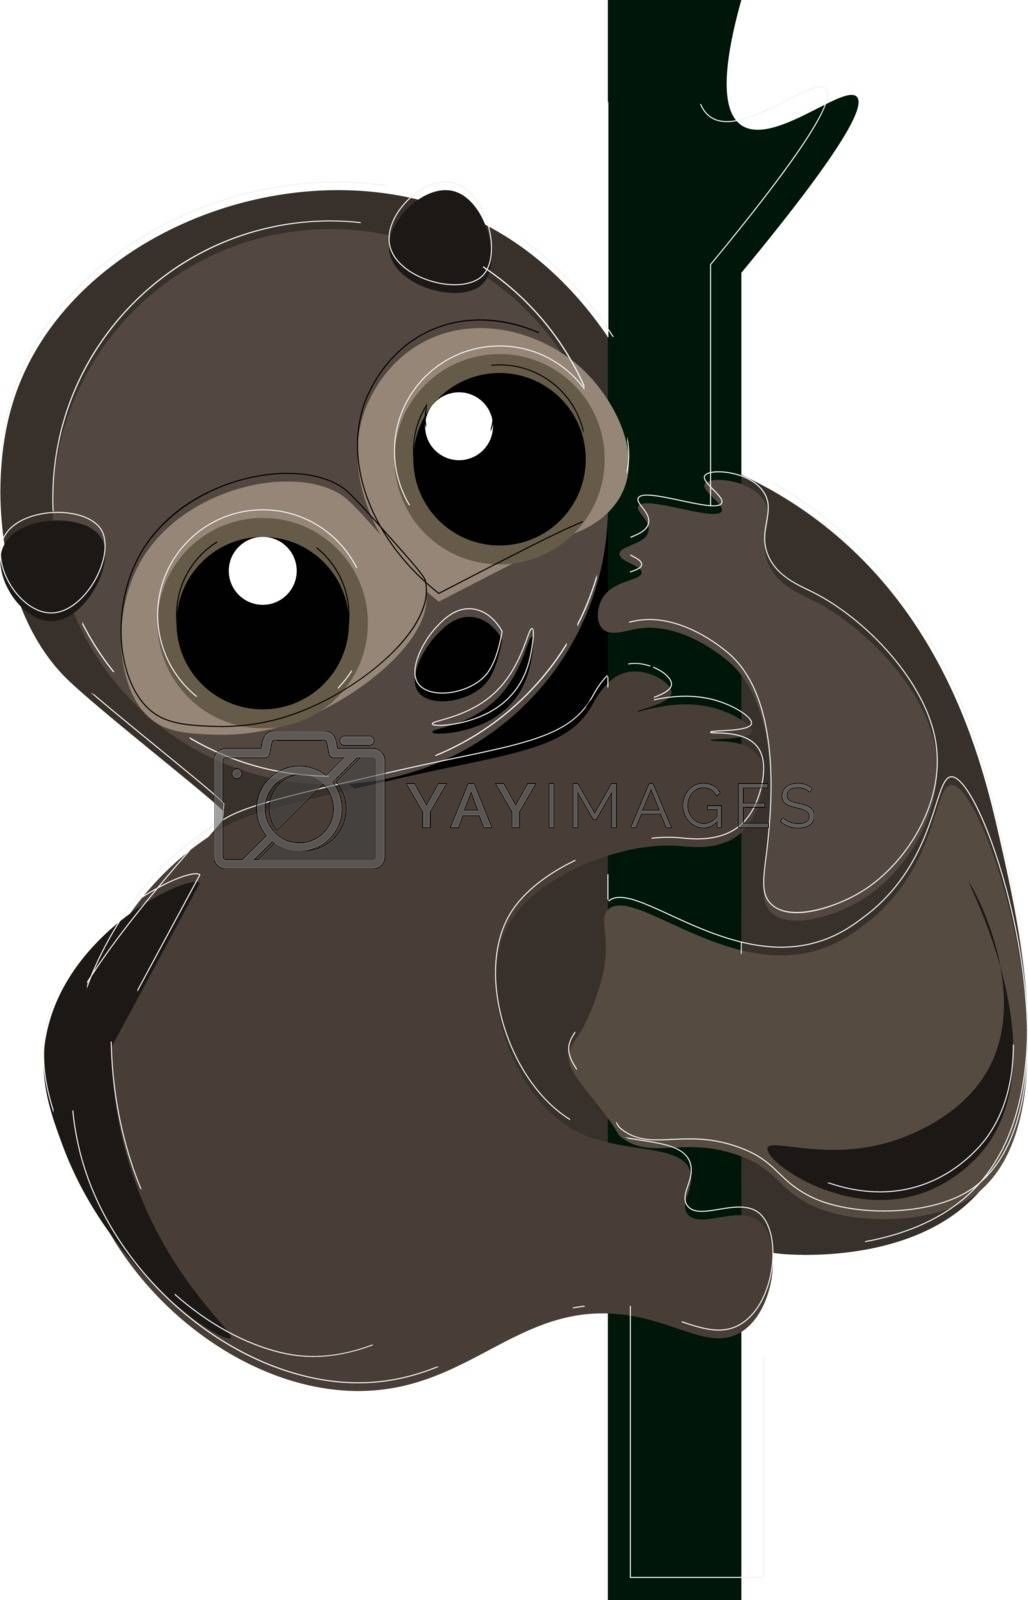 Royalty free image of Cartoon smiling brown loris primate vector or color illustration by Morphart